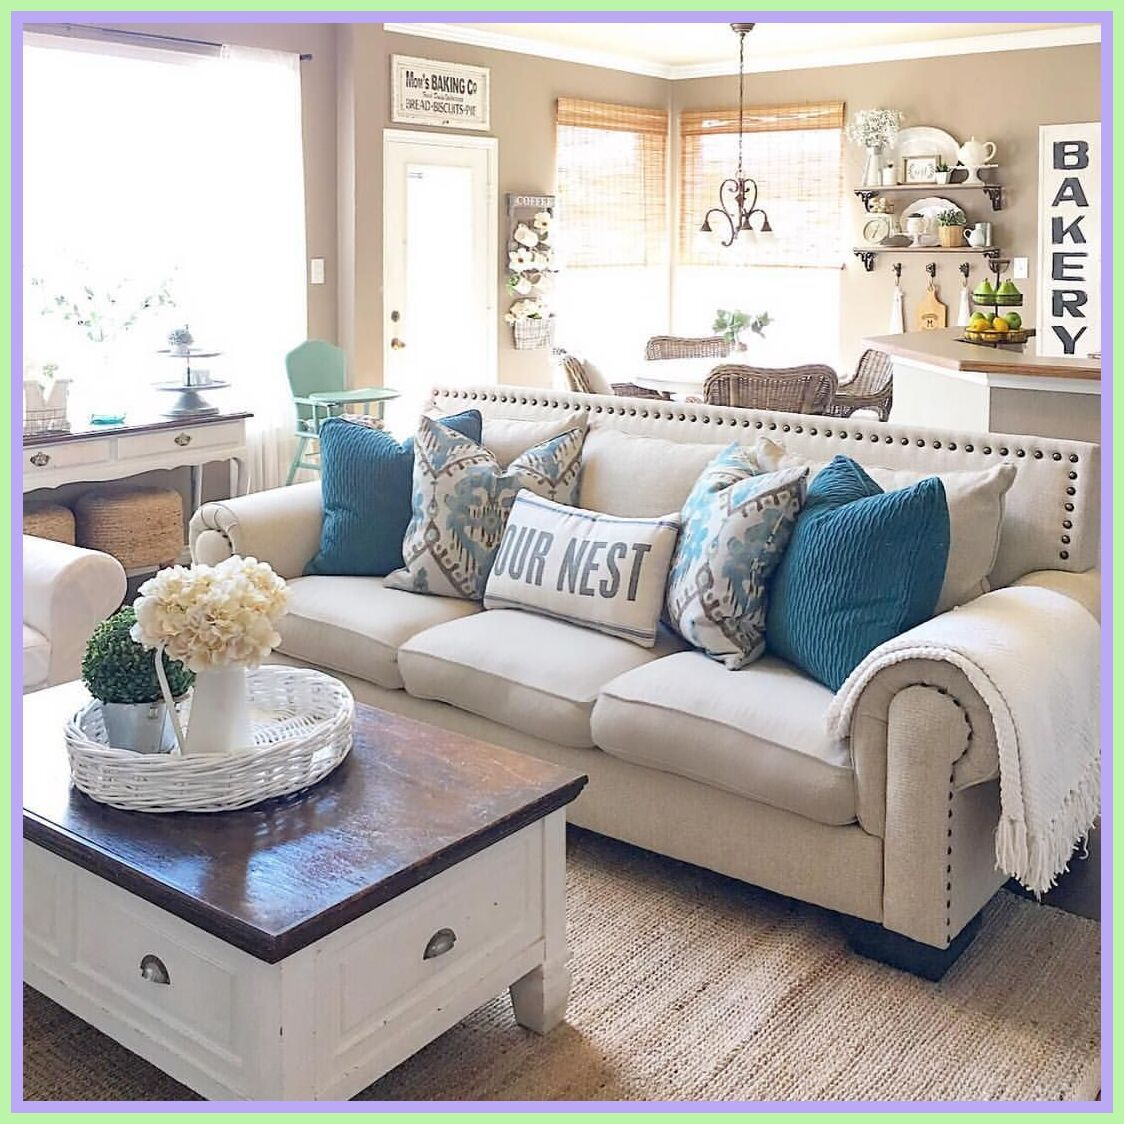 118 Reference Of Farmhouse Living Room Brown Sofa In 2020 Farmhouse Living Room Furniture Farmhouse Decor Living Room Farm House Living Room